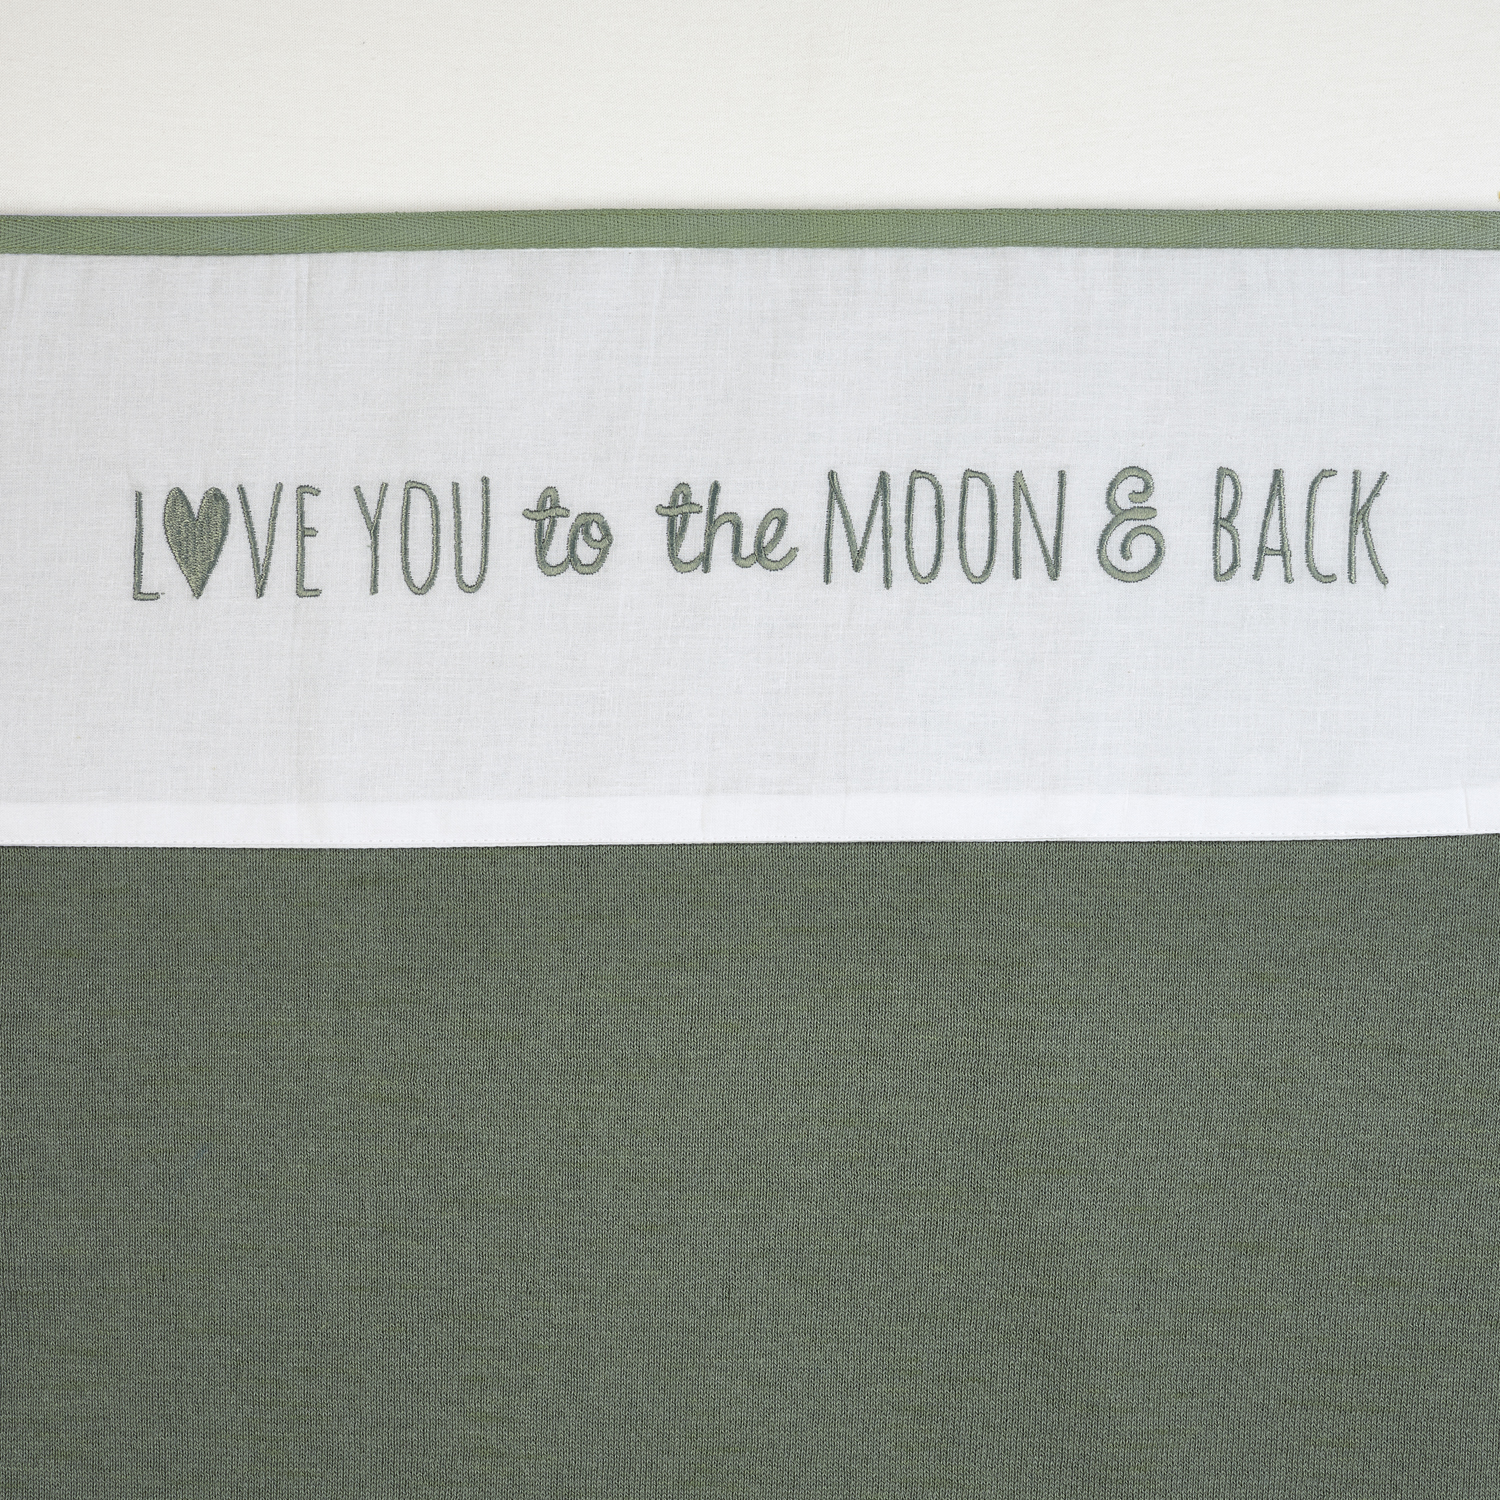 Ledikantlaken Love You To The Moon & Back - Forest Green - 100x150cm